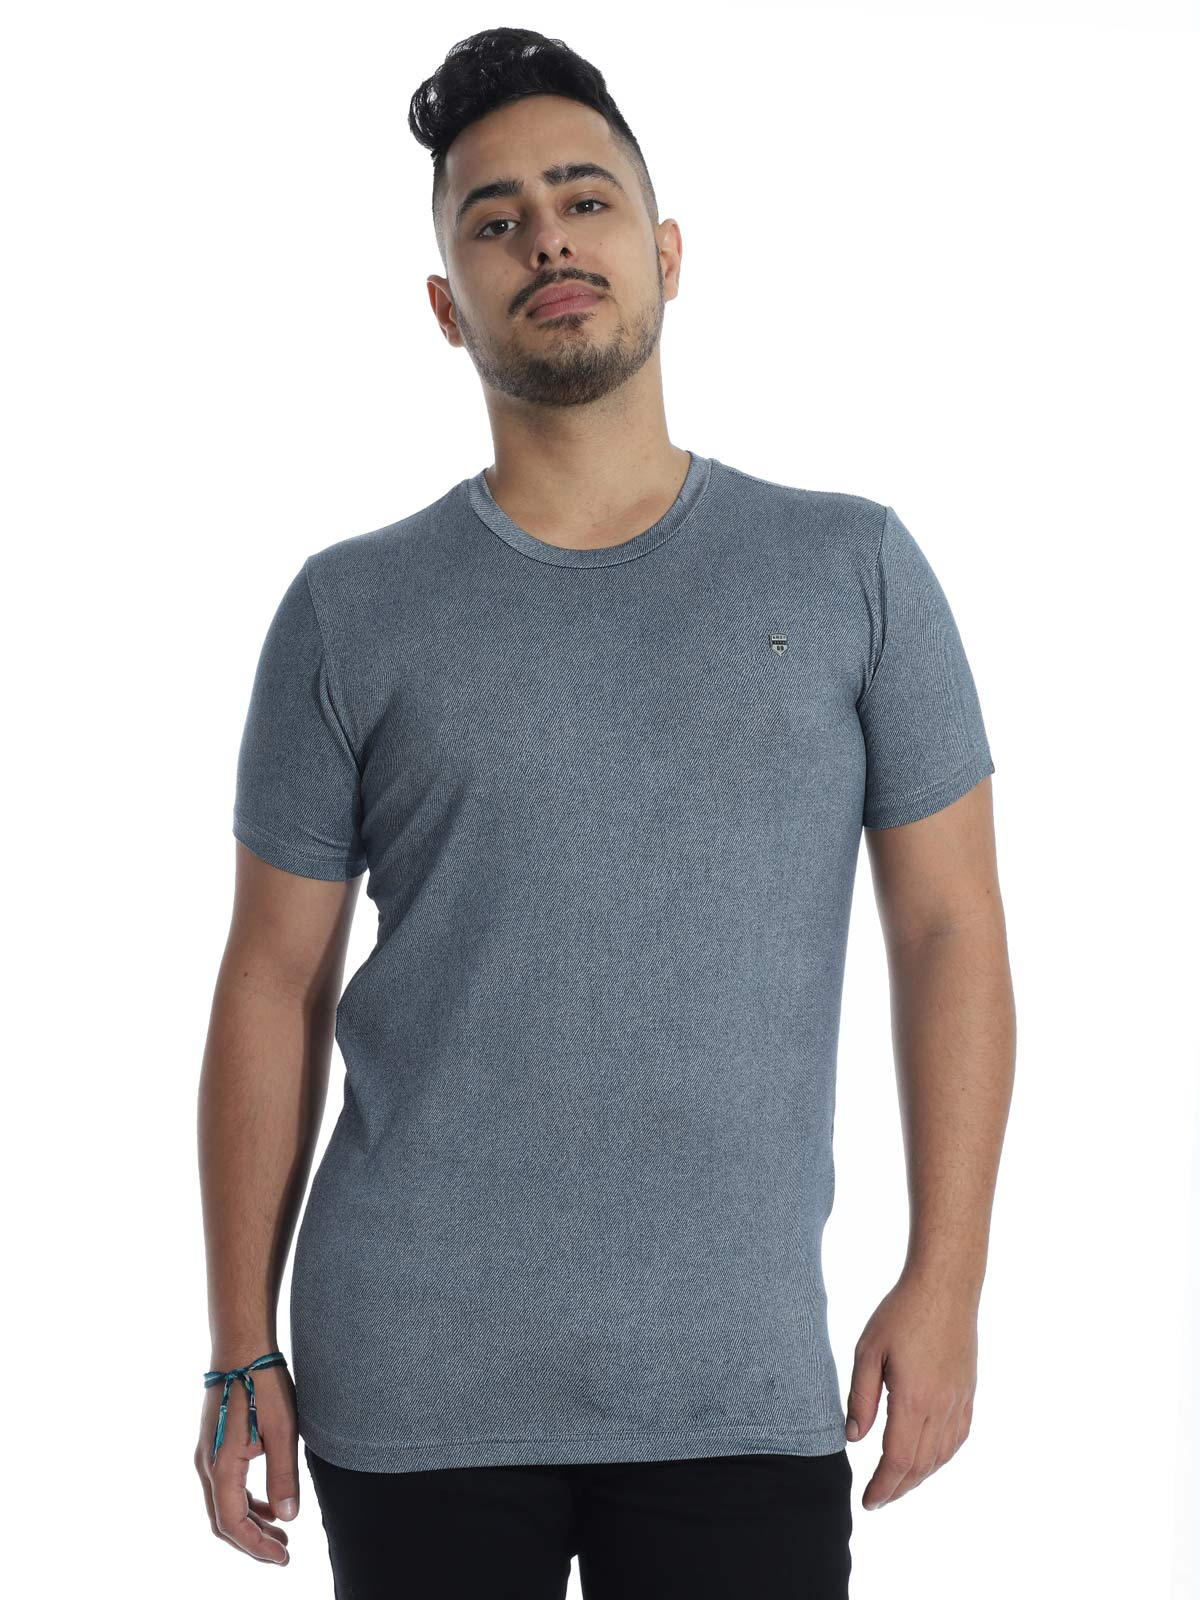 Camiseta Masculina Visco Slim Fit Anistia Jeans